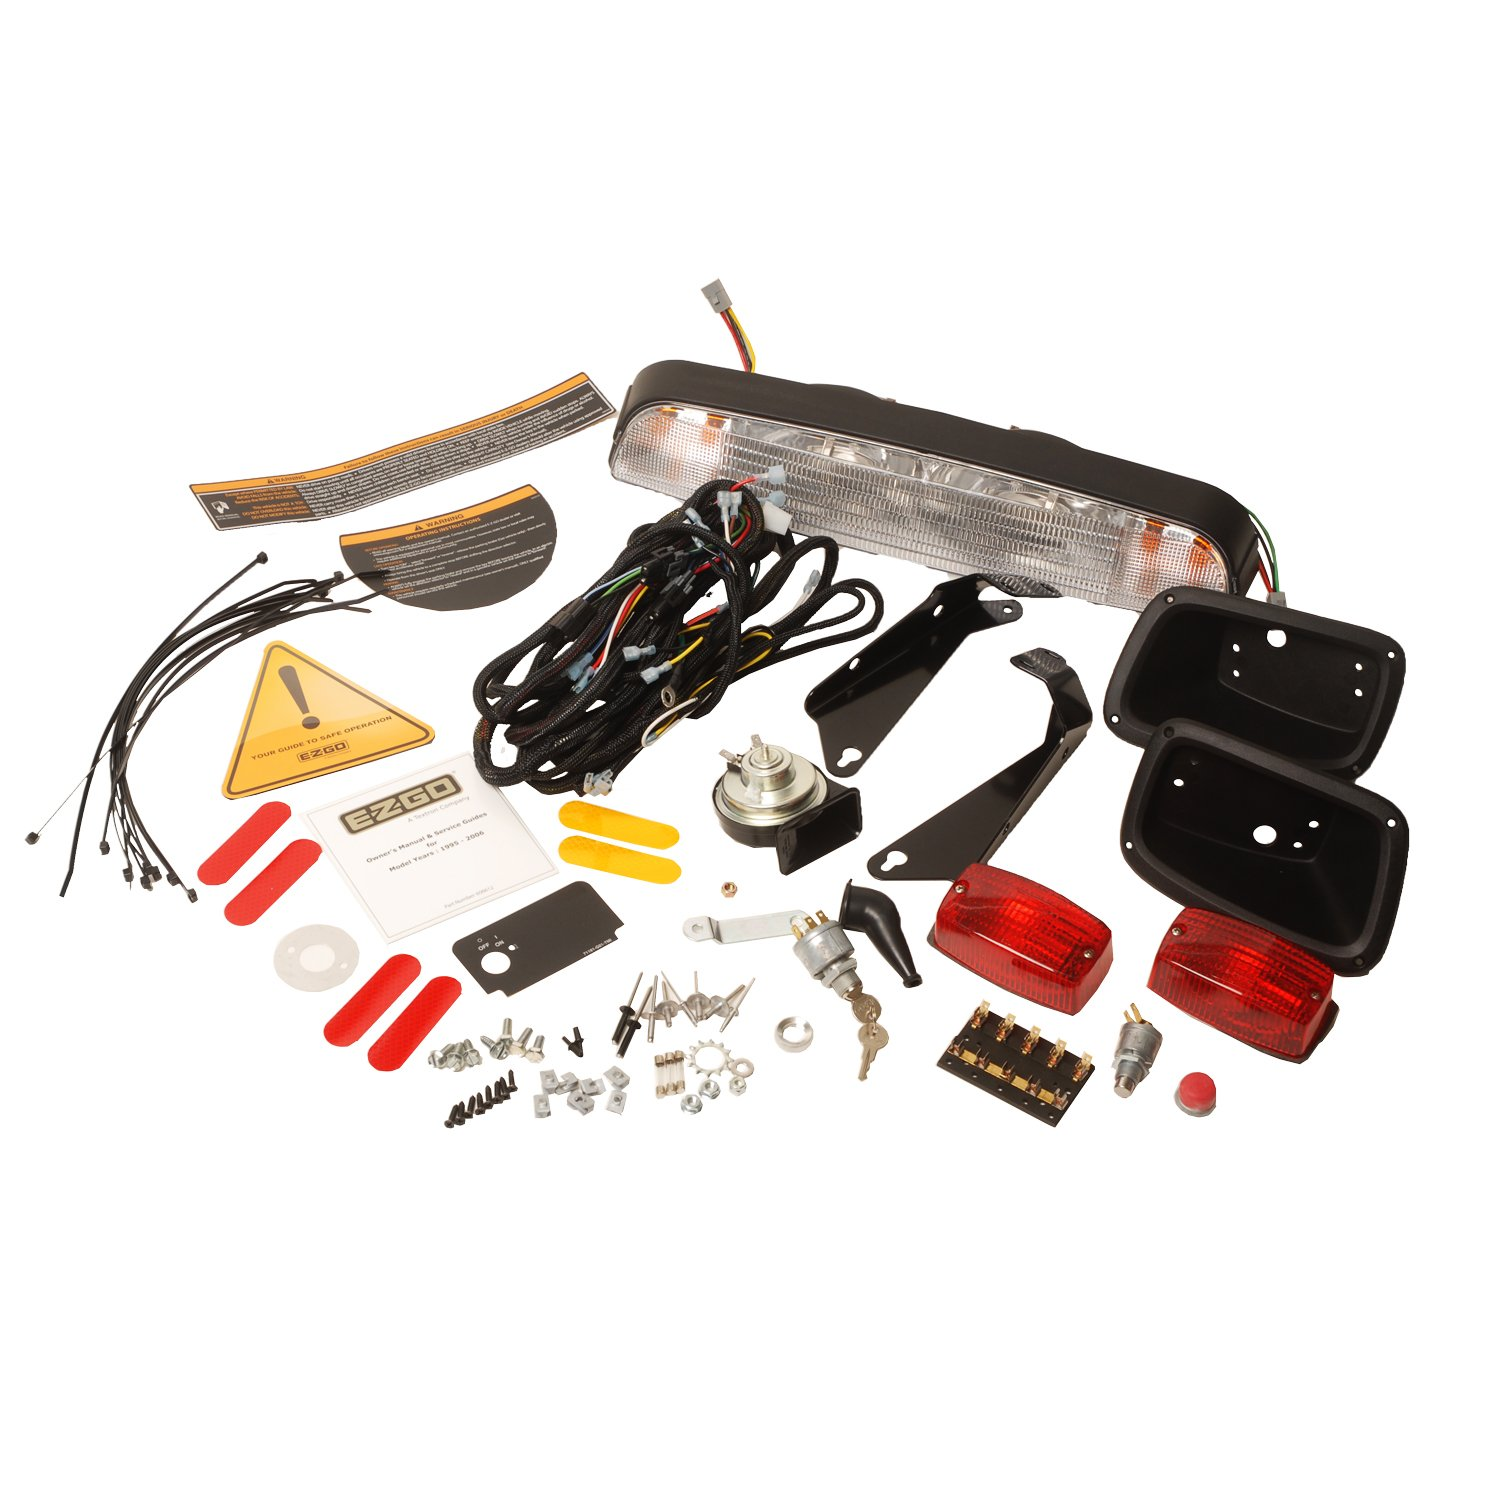 EZGO 607551 Personal Transportation Vehicle Conversion Kit For Gas TXT